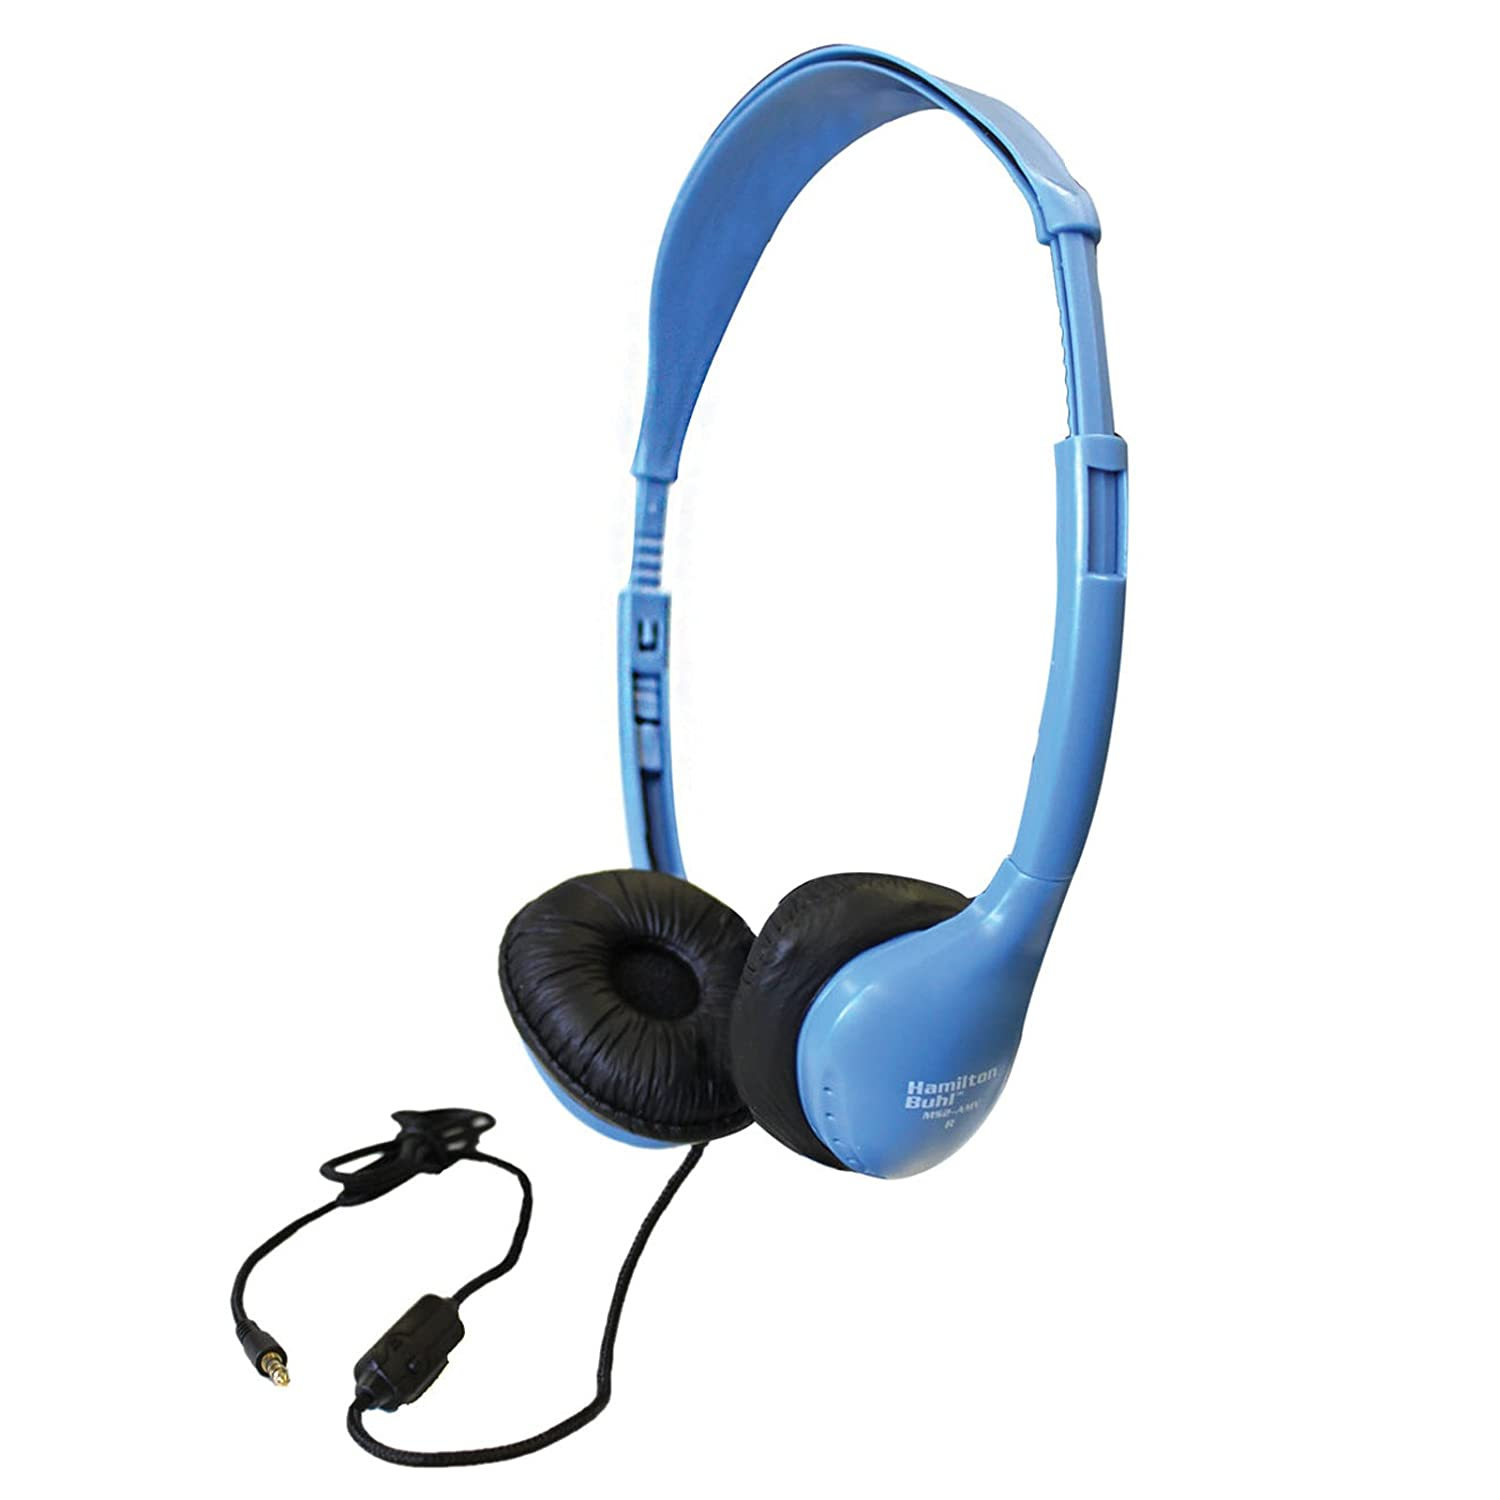 HamiltonBuhl HECMS2AMV iCompatible Personal Headset with In-Line Microphone